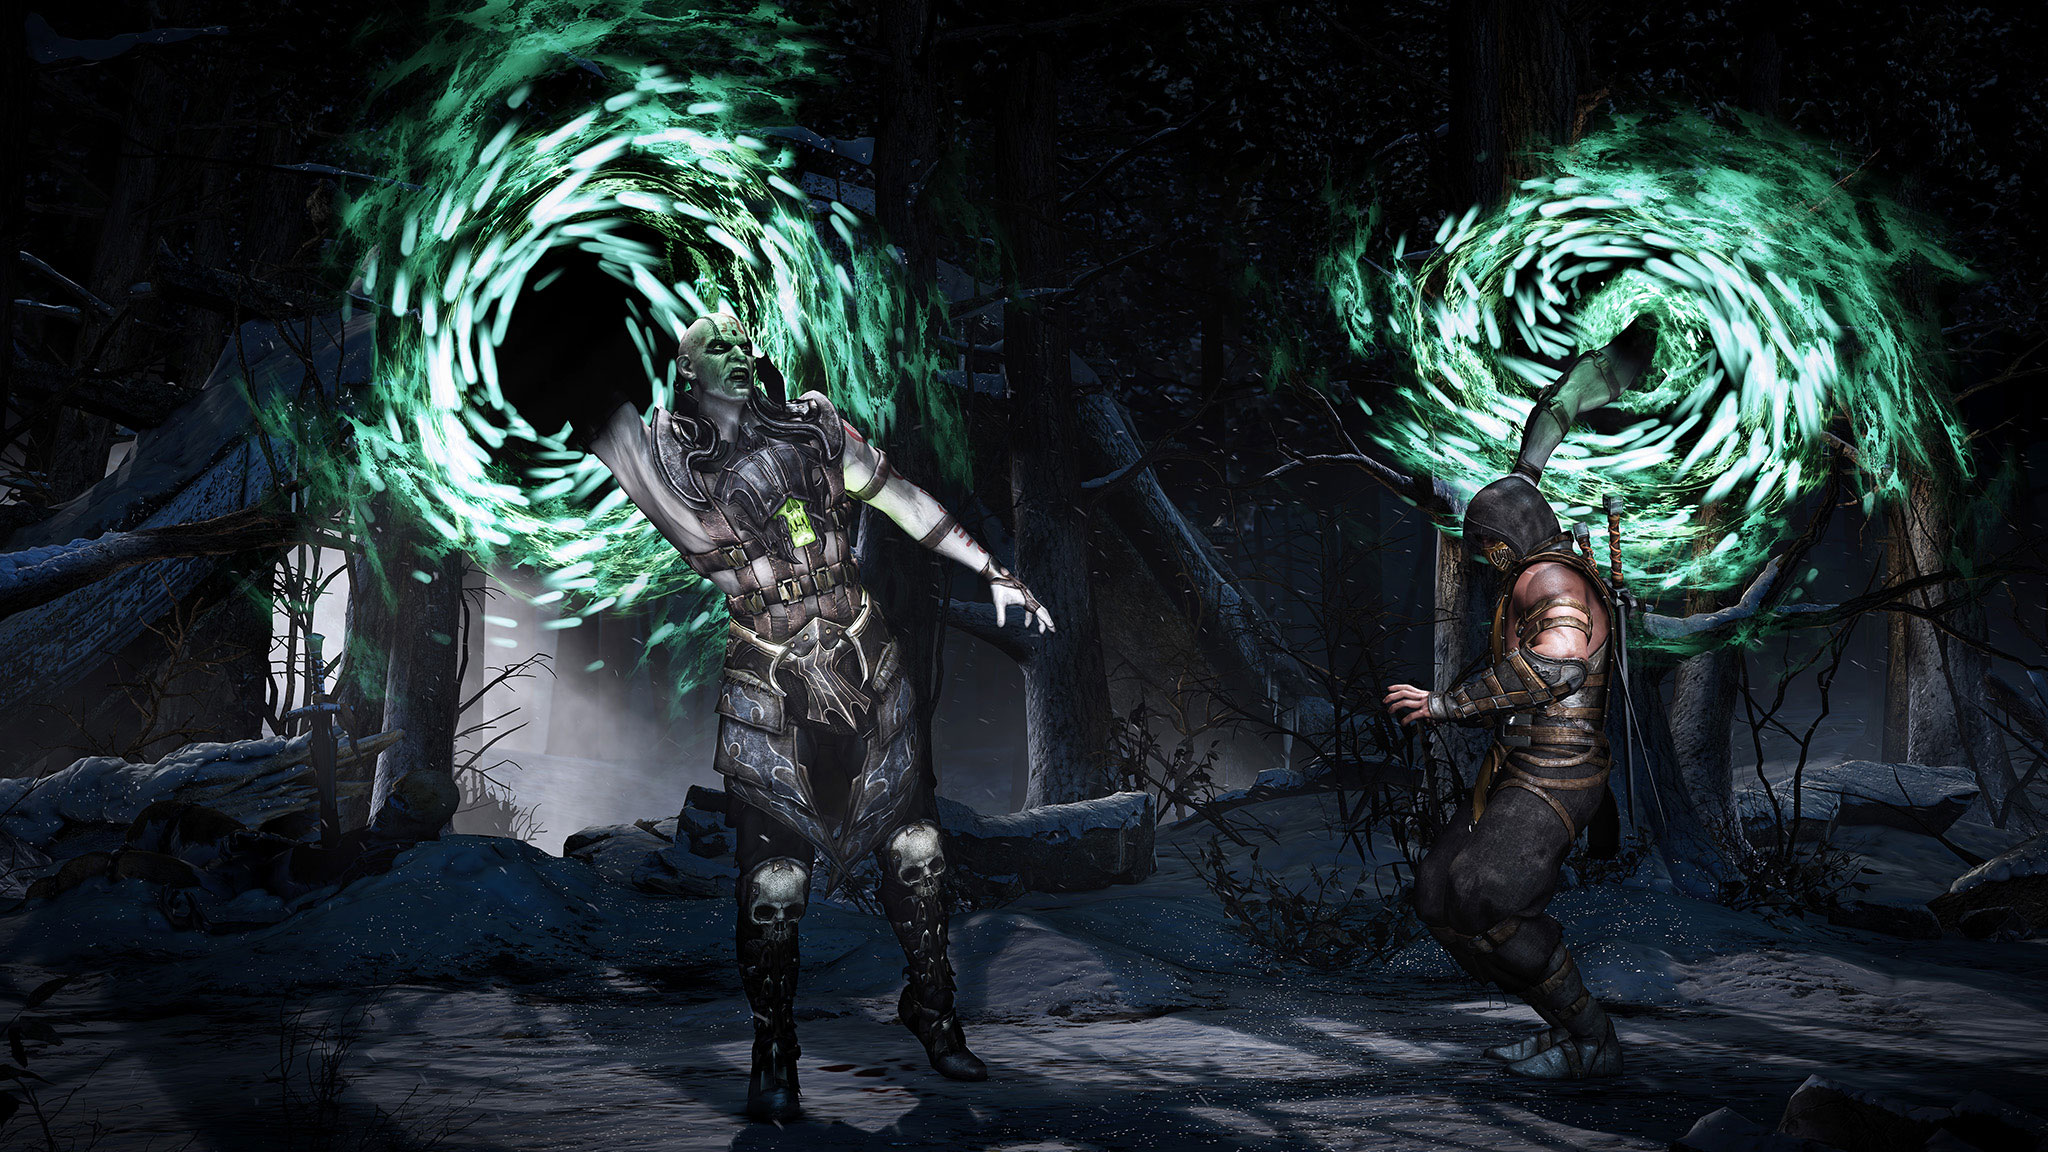 Mortal Kombat X Johnny Cage And Sonya Blade Trailer Sneaks In A Third Character Reveal #32637